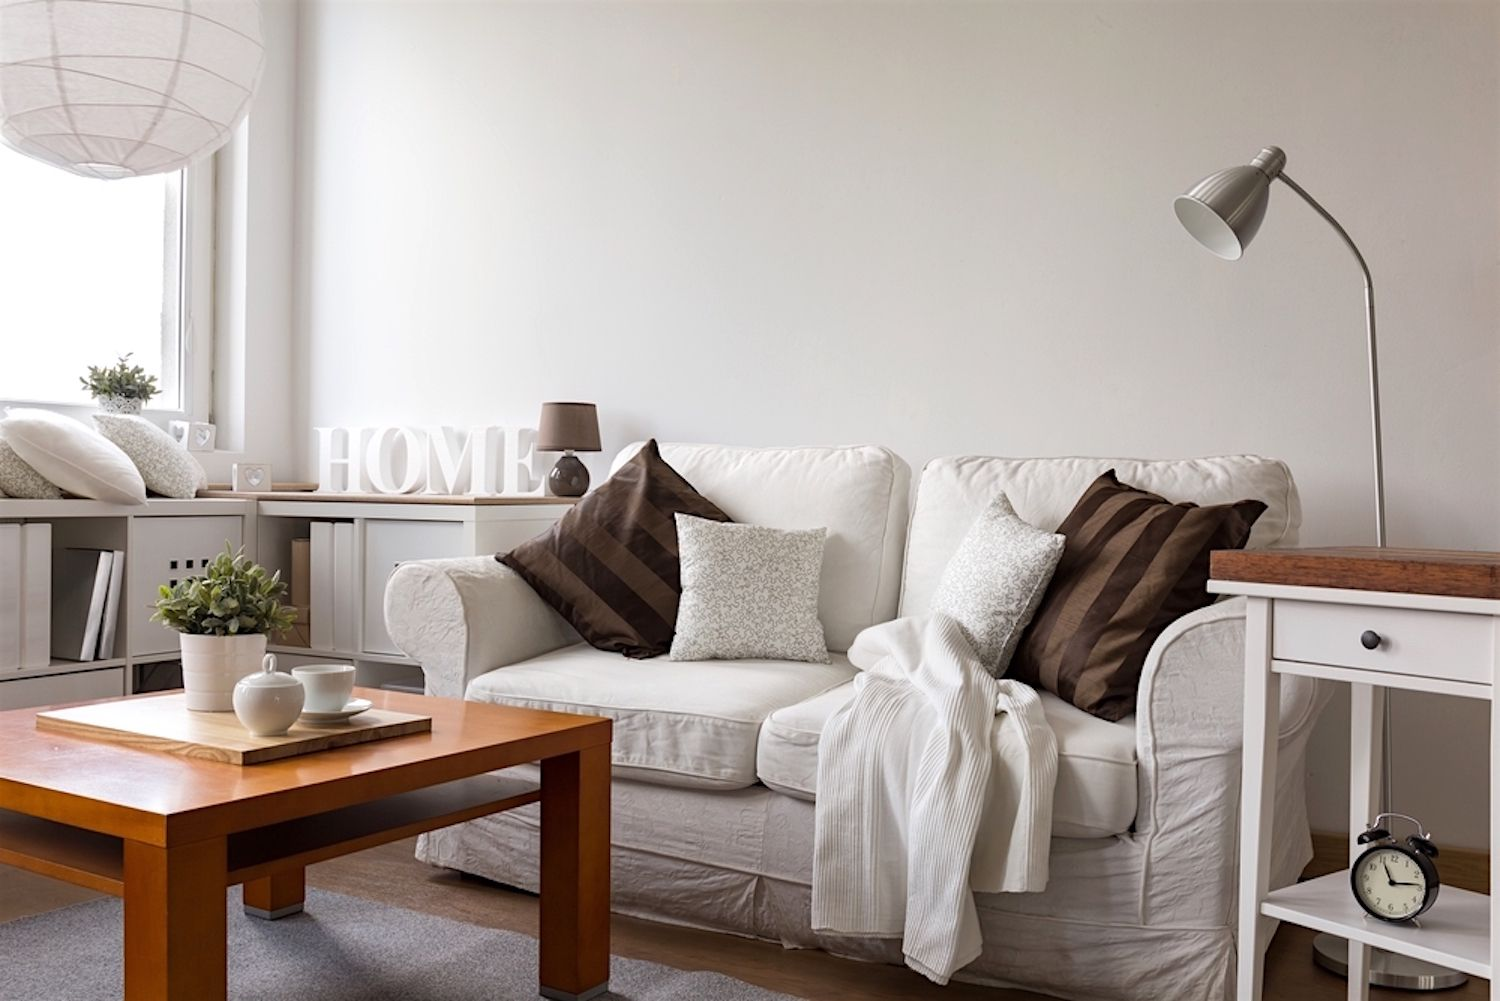 Home Staging Tips: Top Frequent Staging Questions on home selling tips, home stager, insurance tips, home color tips, home organizing, nate berkus painting tips, home maintenance tips, home management tips, landscaping tips, staging a home, home packing tips, real estate staging, home staging business, real estate tips, home real estate, home security tips, home decor tips, home black and white, home inspection tips, home audio tips, home remodeling tips, home tips and tricks, home construction tips, vacant home staging, home survival tips,